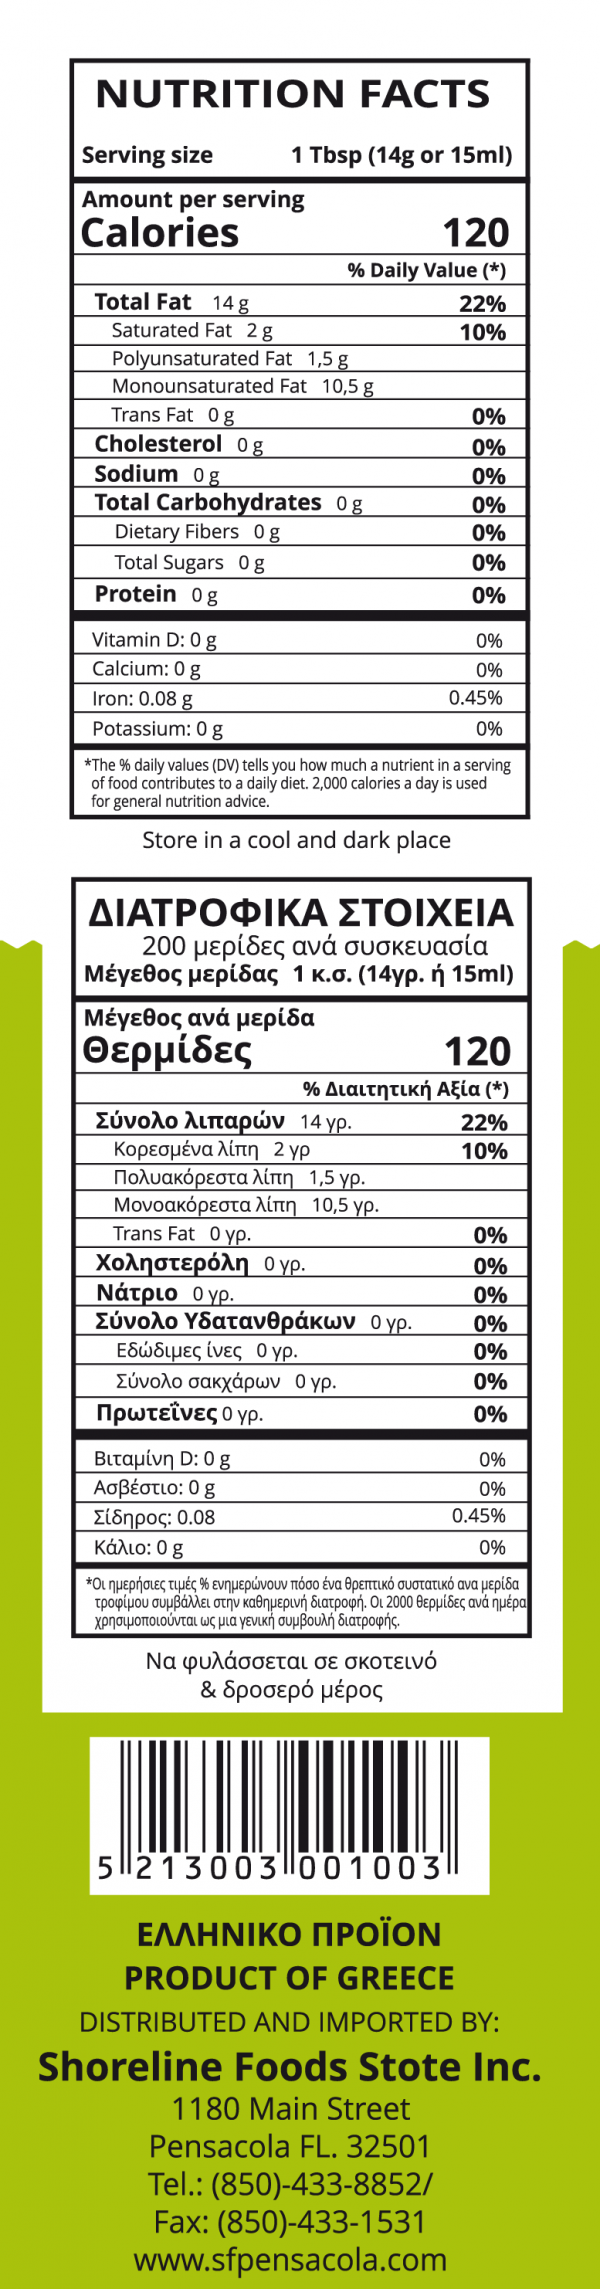 Shoreline EVOO Nutrition Facts